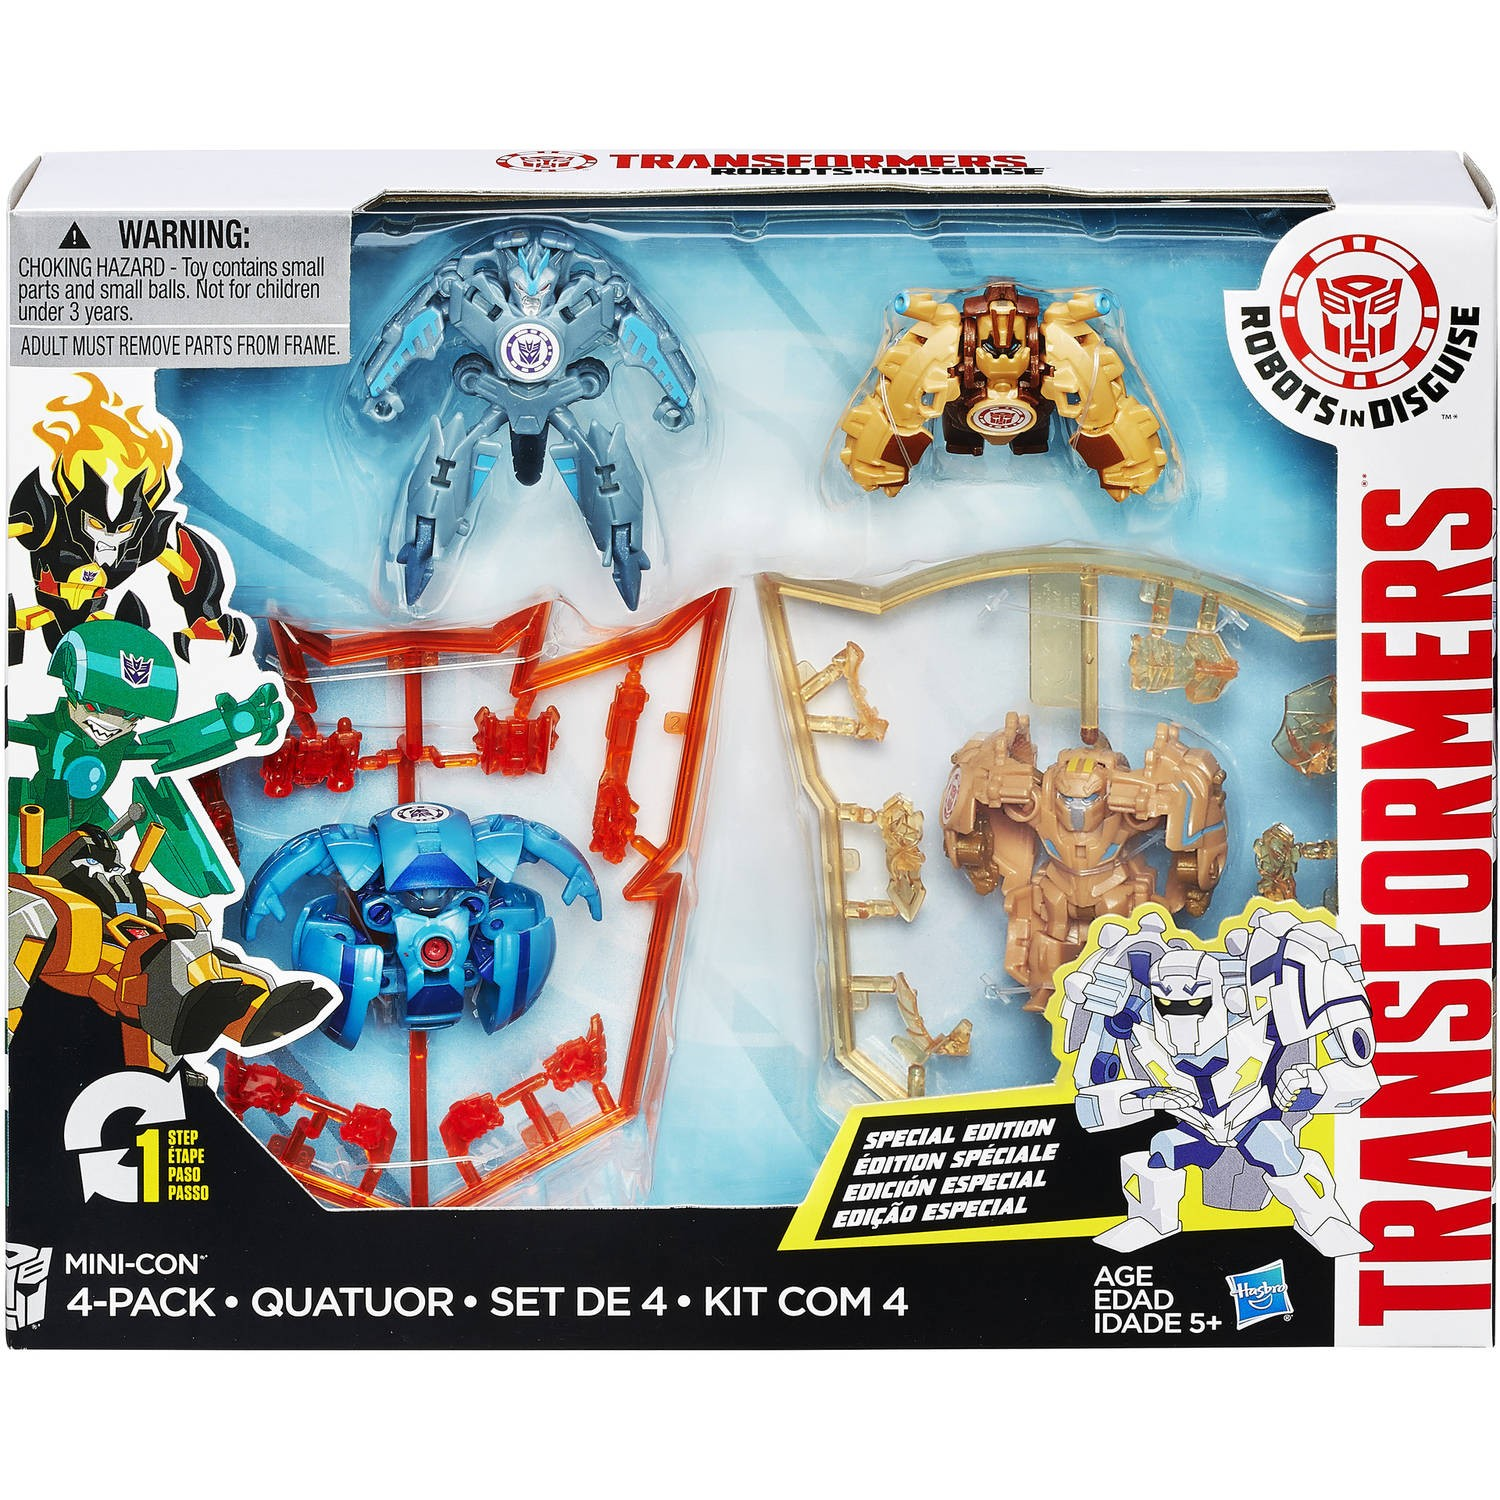 Transformers News: Steal of a Deal: Minicon Markdowns on Hasbro Toy Shop's Ebay Store